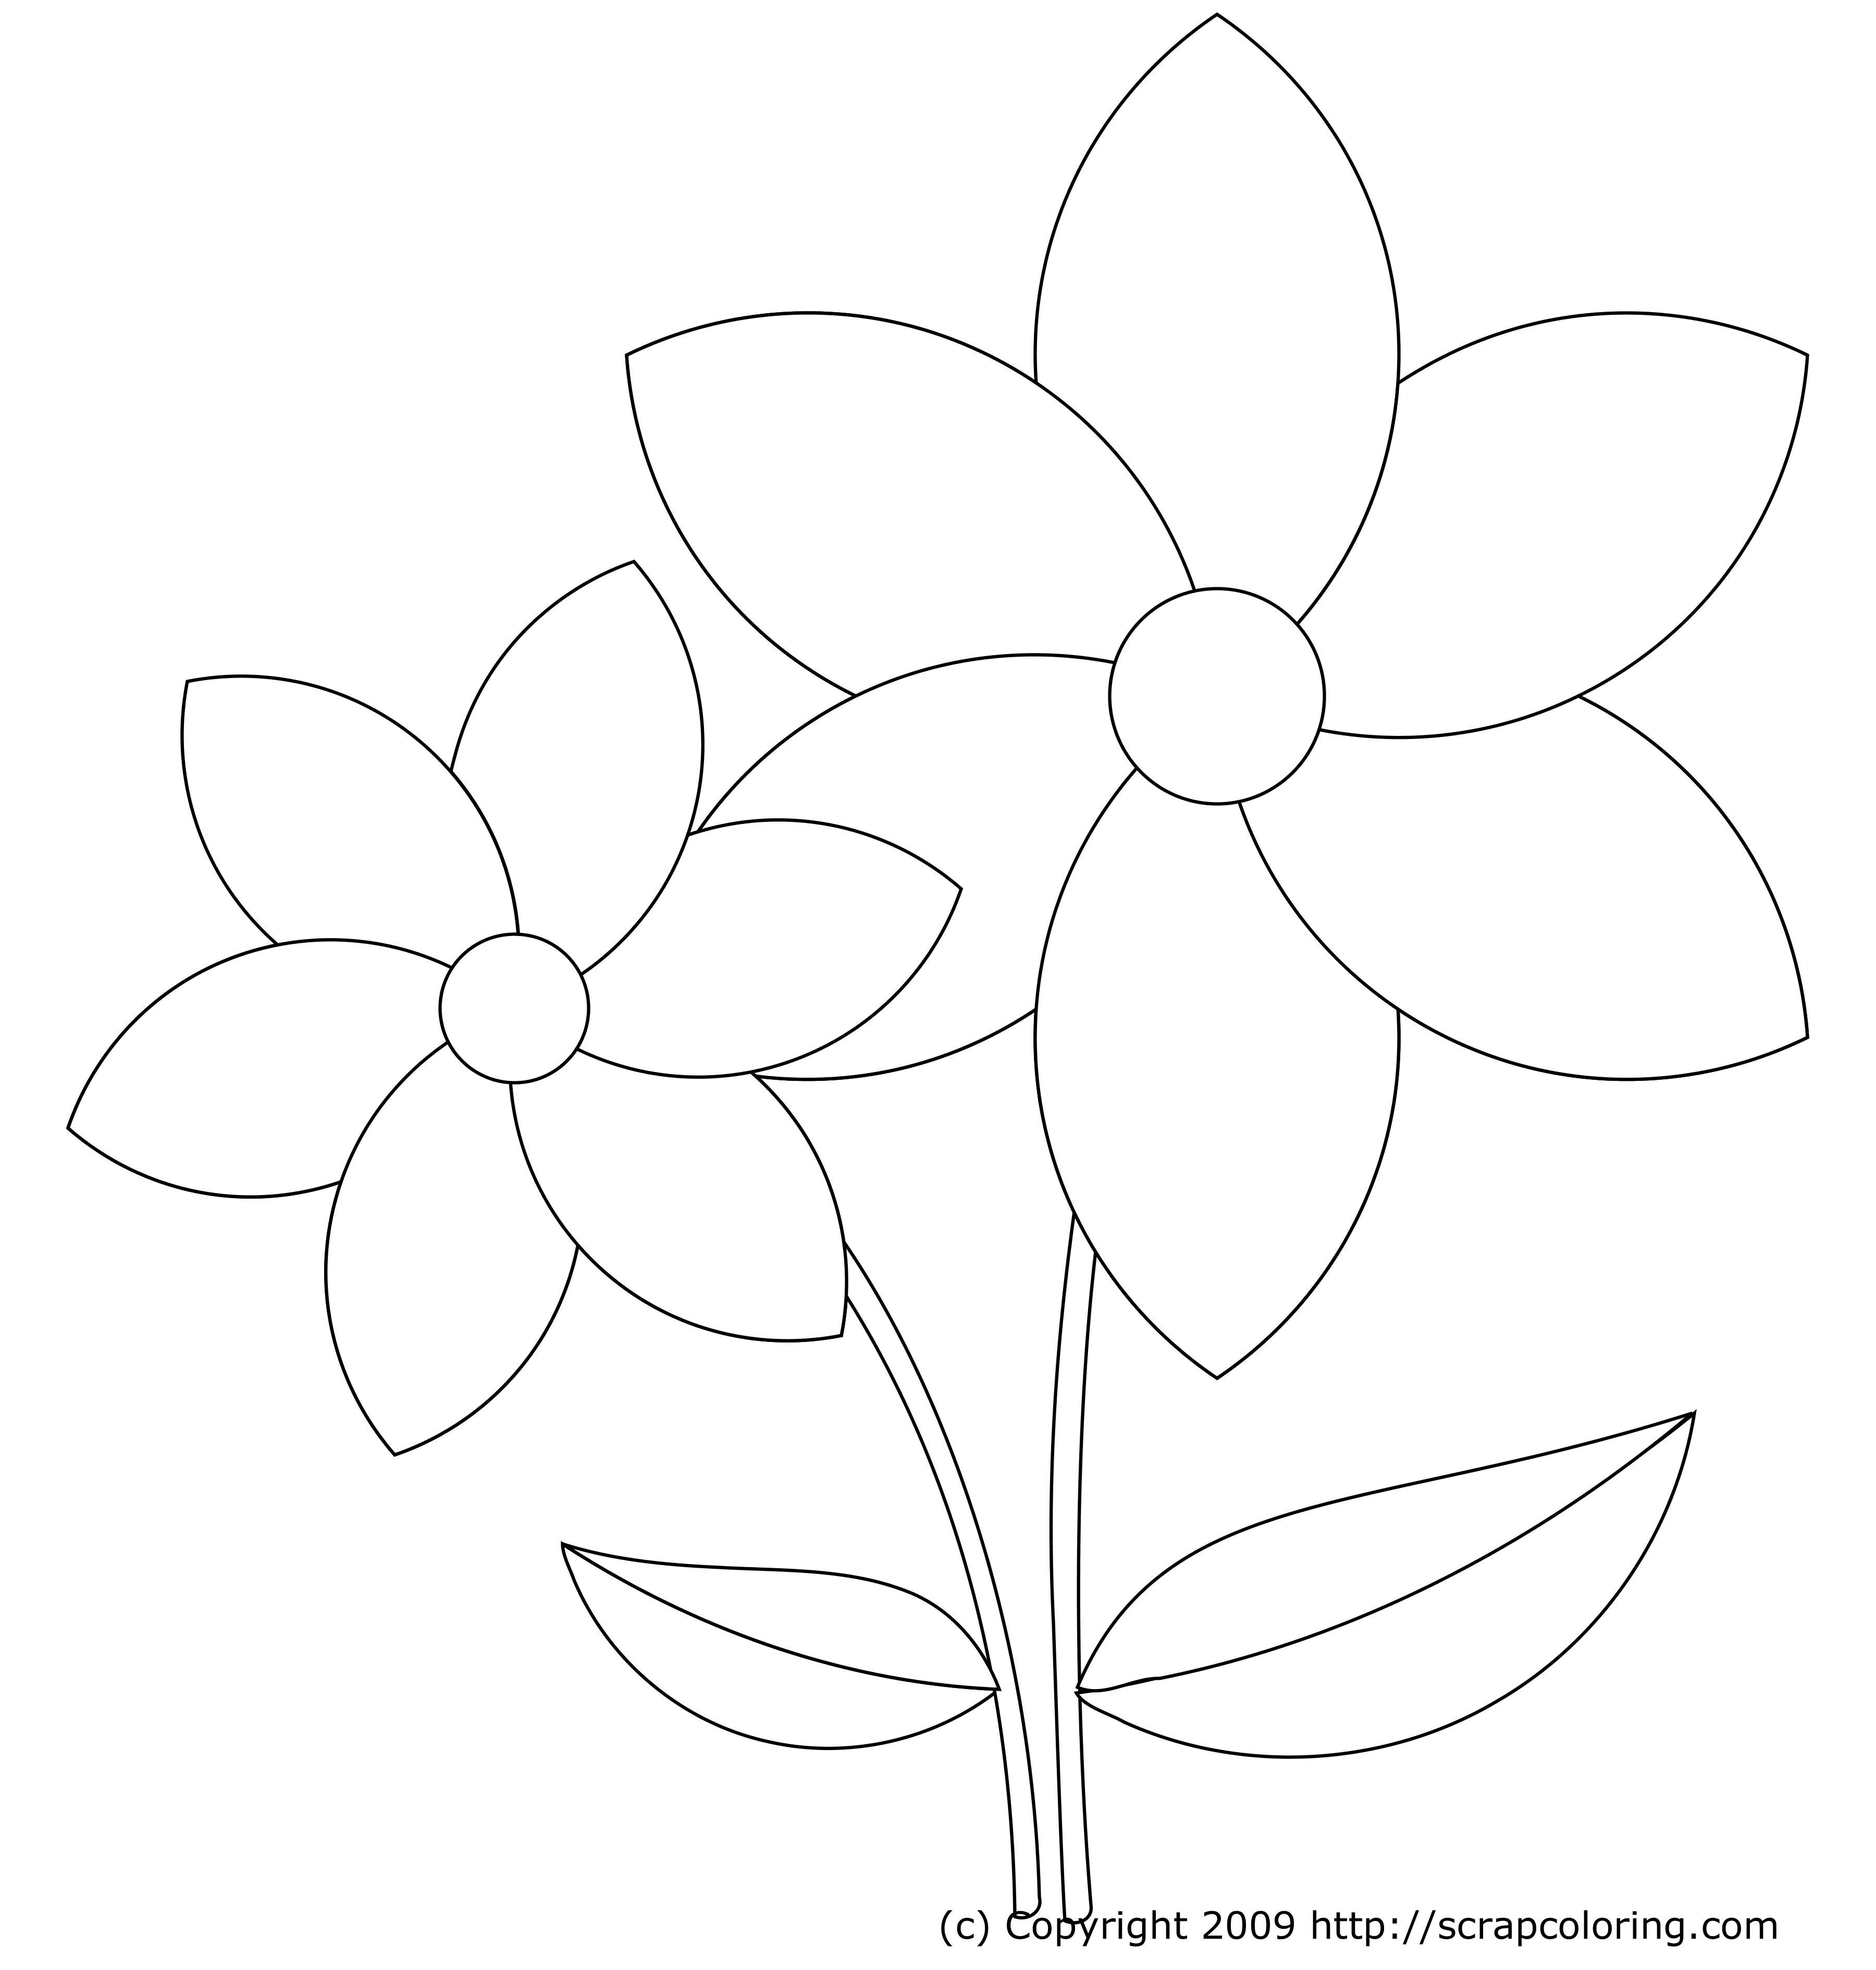 Free Flower Petals Coloring Pages - Coloring Home